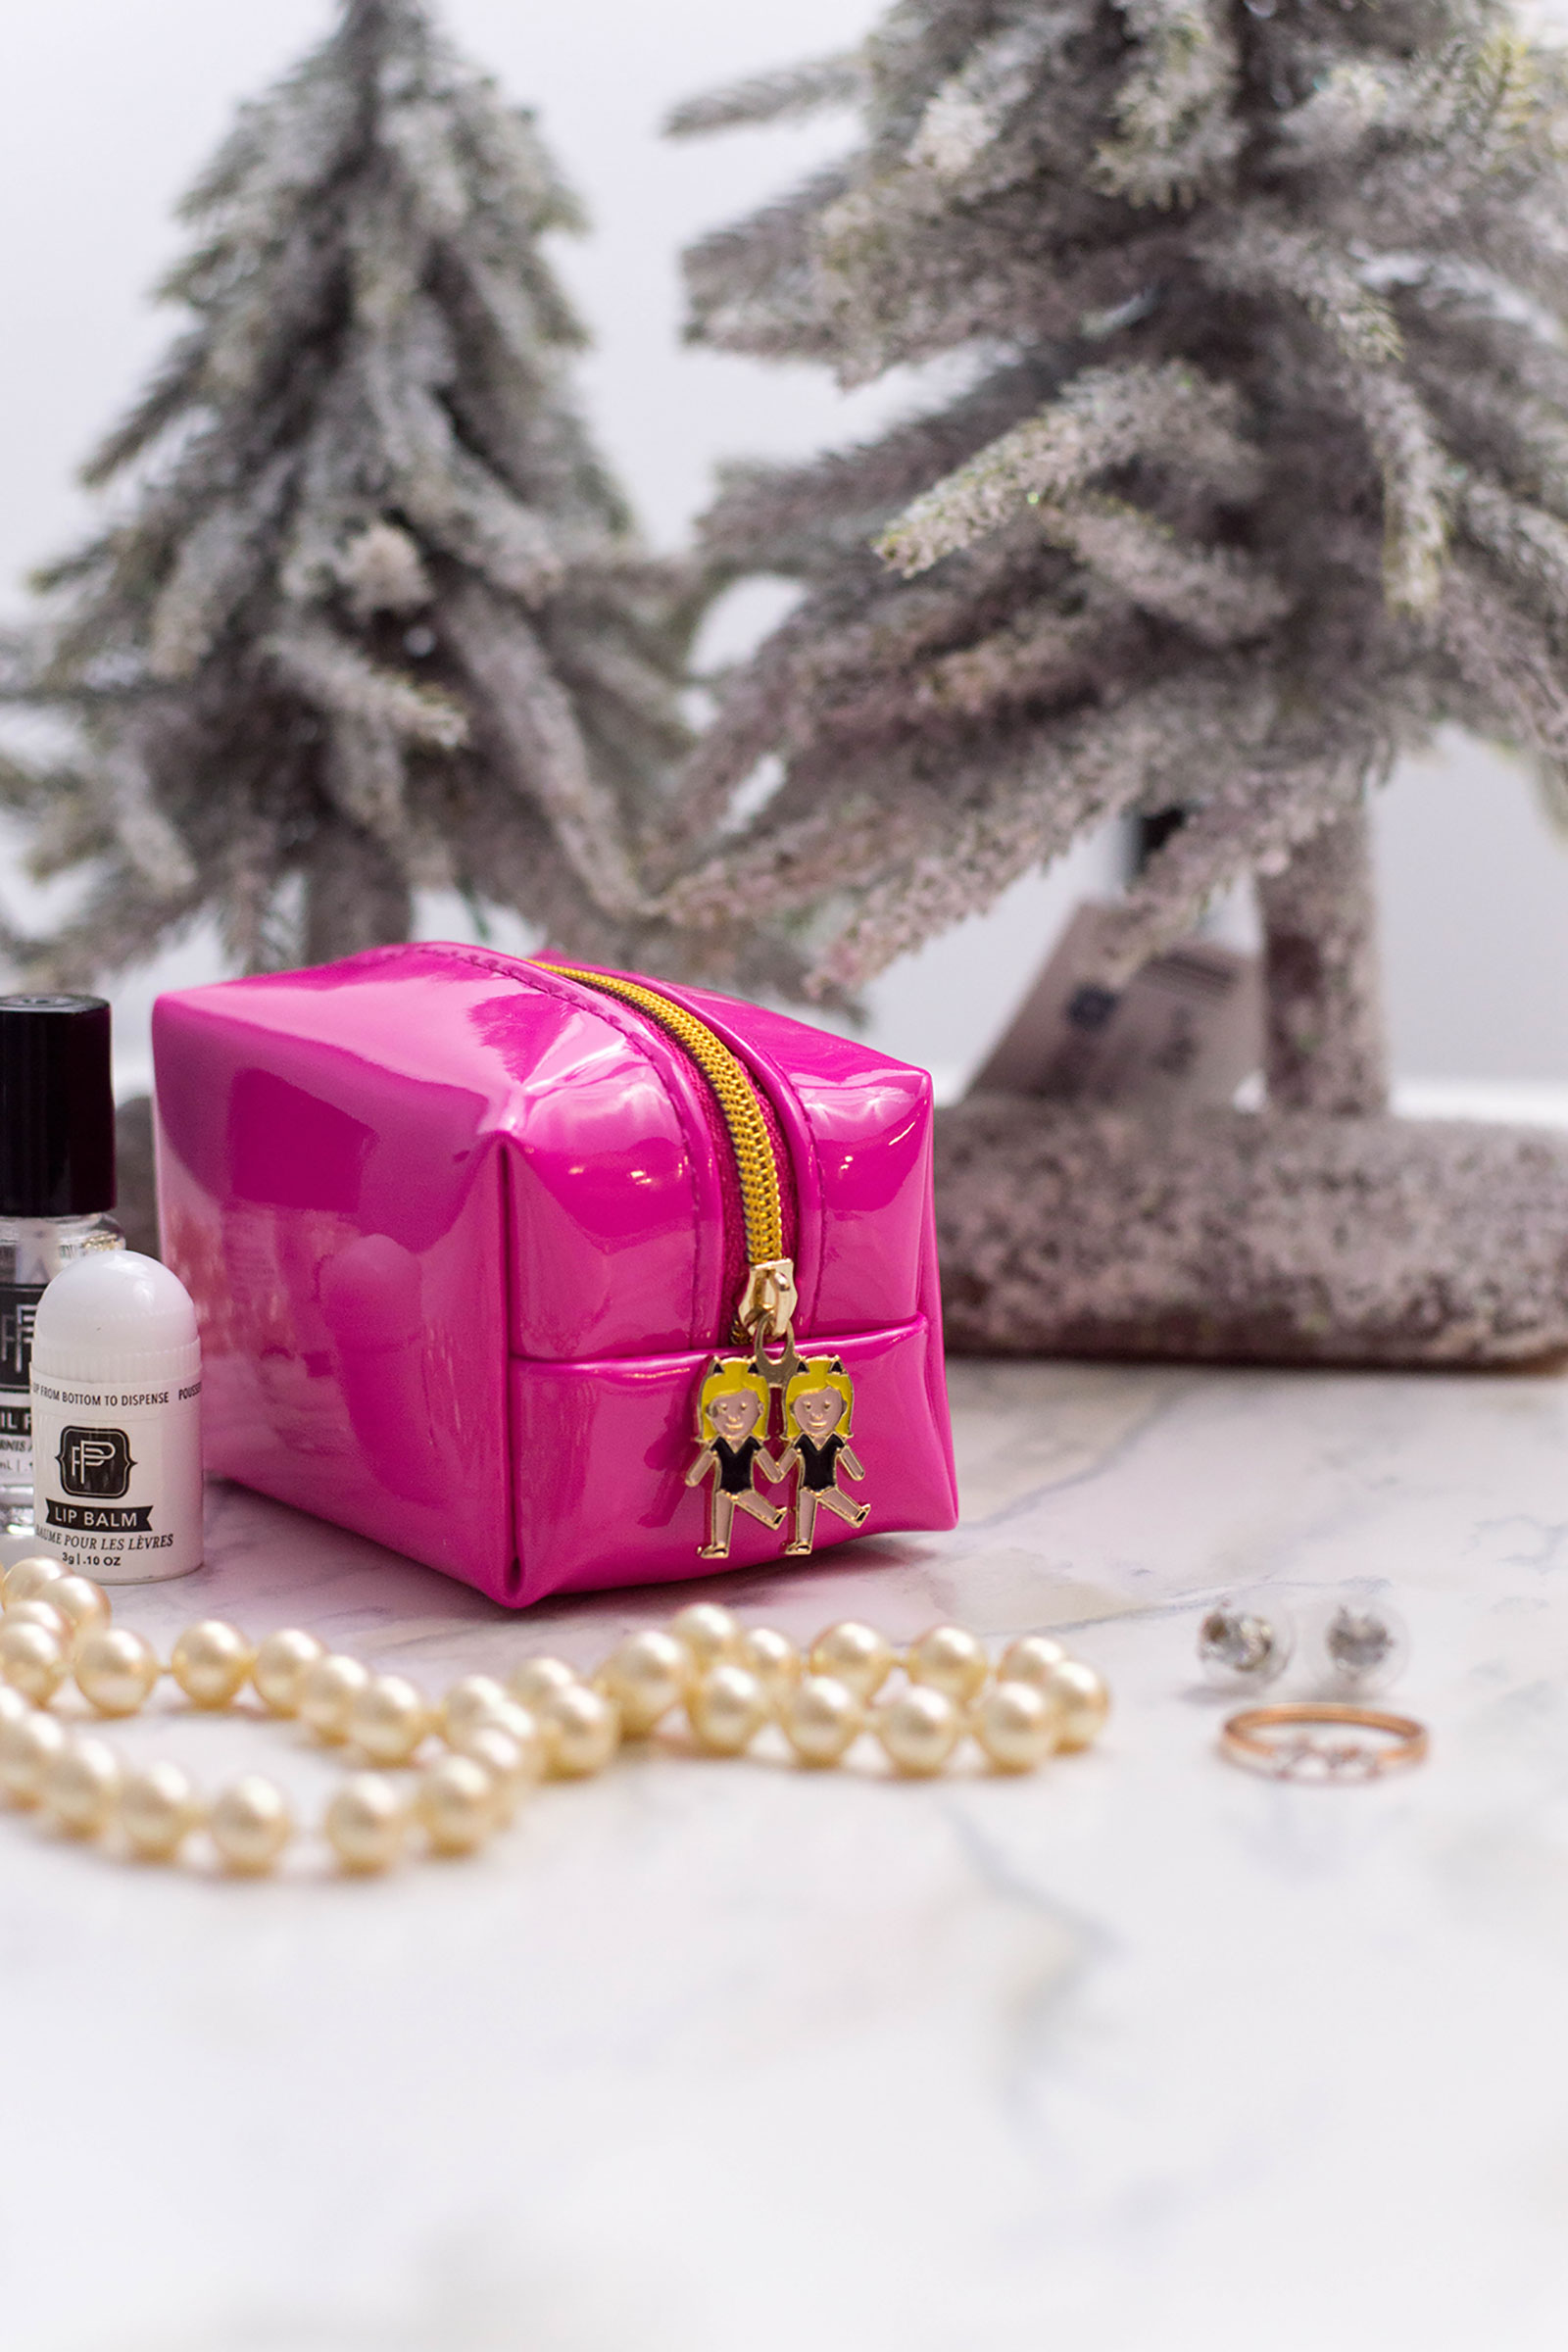 Bestie Gift Guide: 7 Ideas for Your BFF